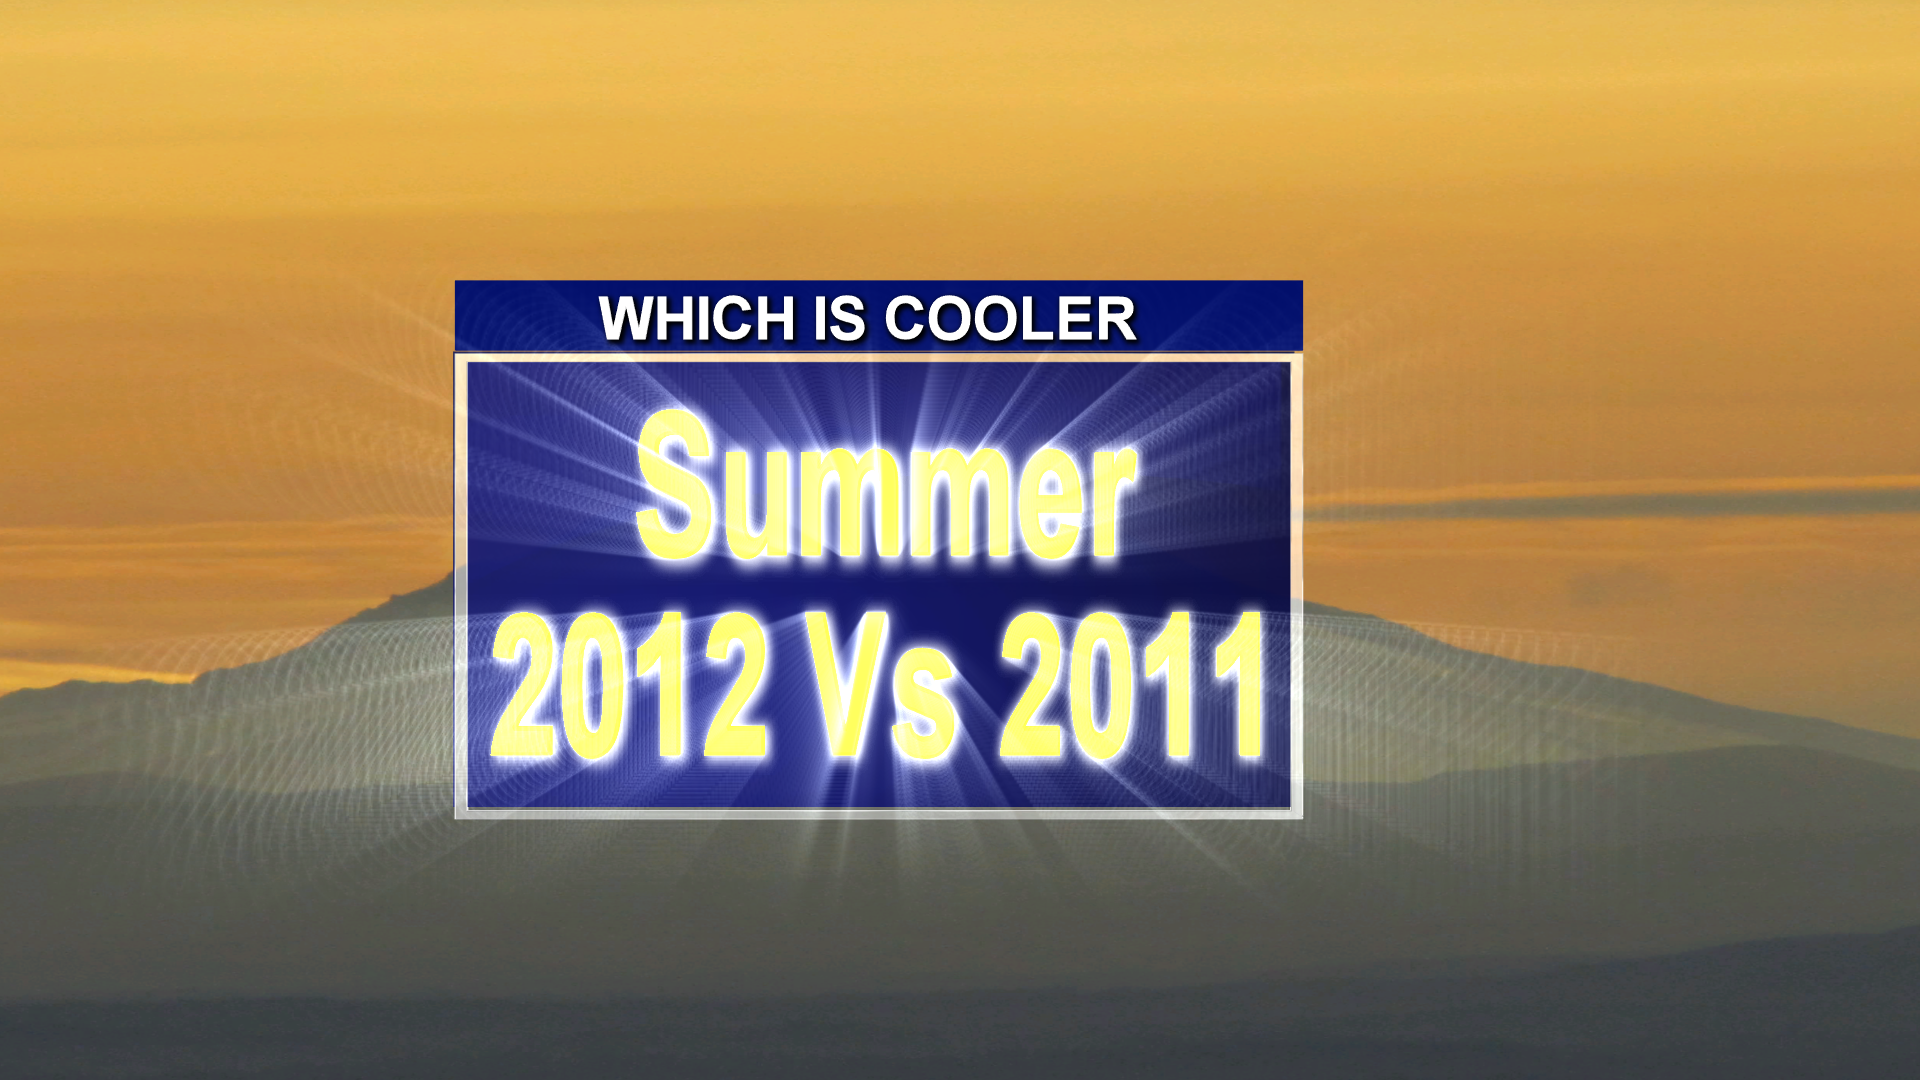 Summer 2012 vs. Summer 2011: Which One's Cooler?